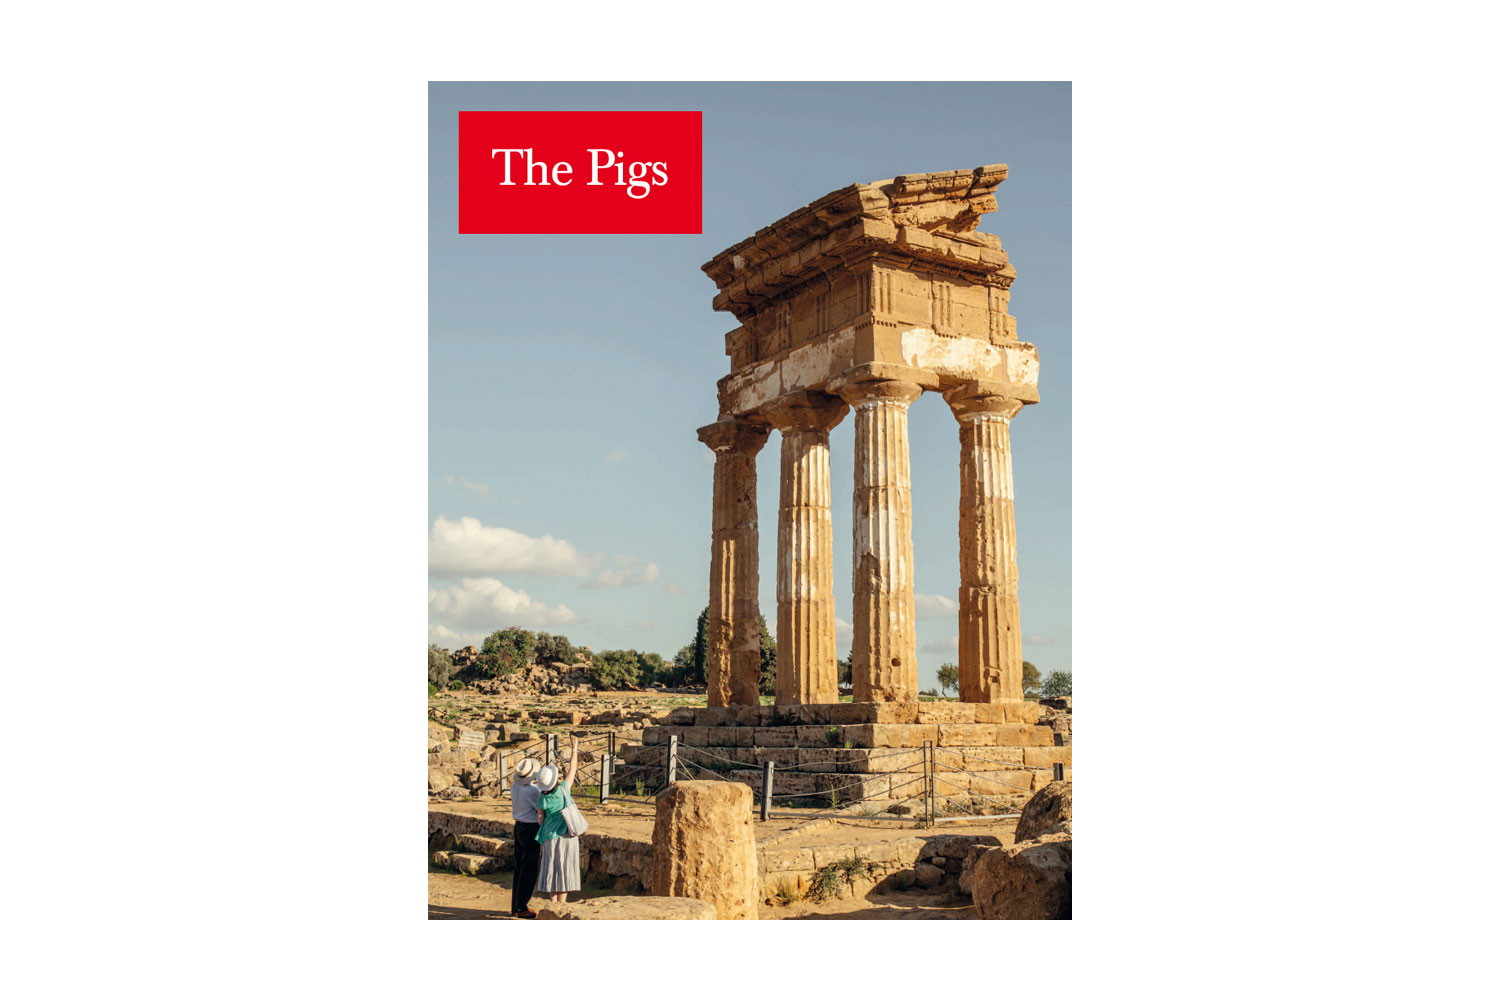 Carlos Spottorno's The Pigs, published by RM/Phree PIGS (Portugal, Italy, Greece and Spain), a convenient acronym for a region rocked by economic collapse, appear as backhanded vacation snapshots, loaded with sarcasm and leering at common cultural stereotypes.